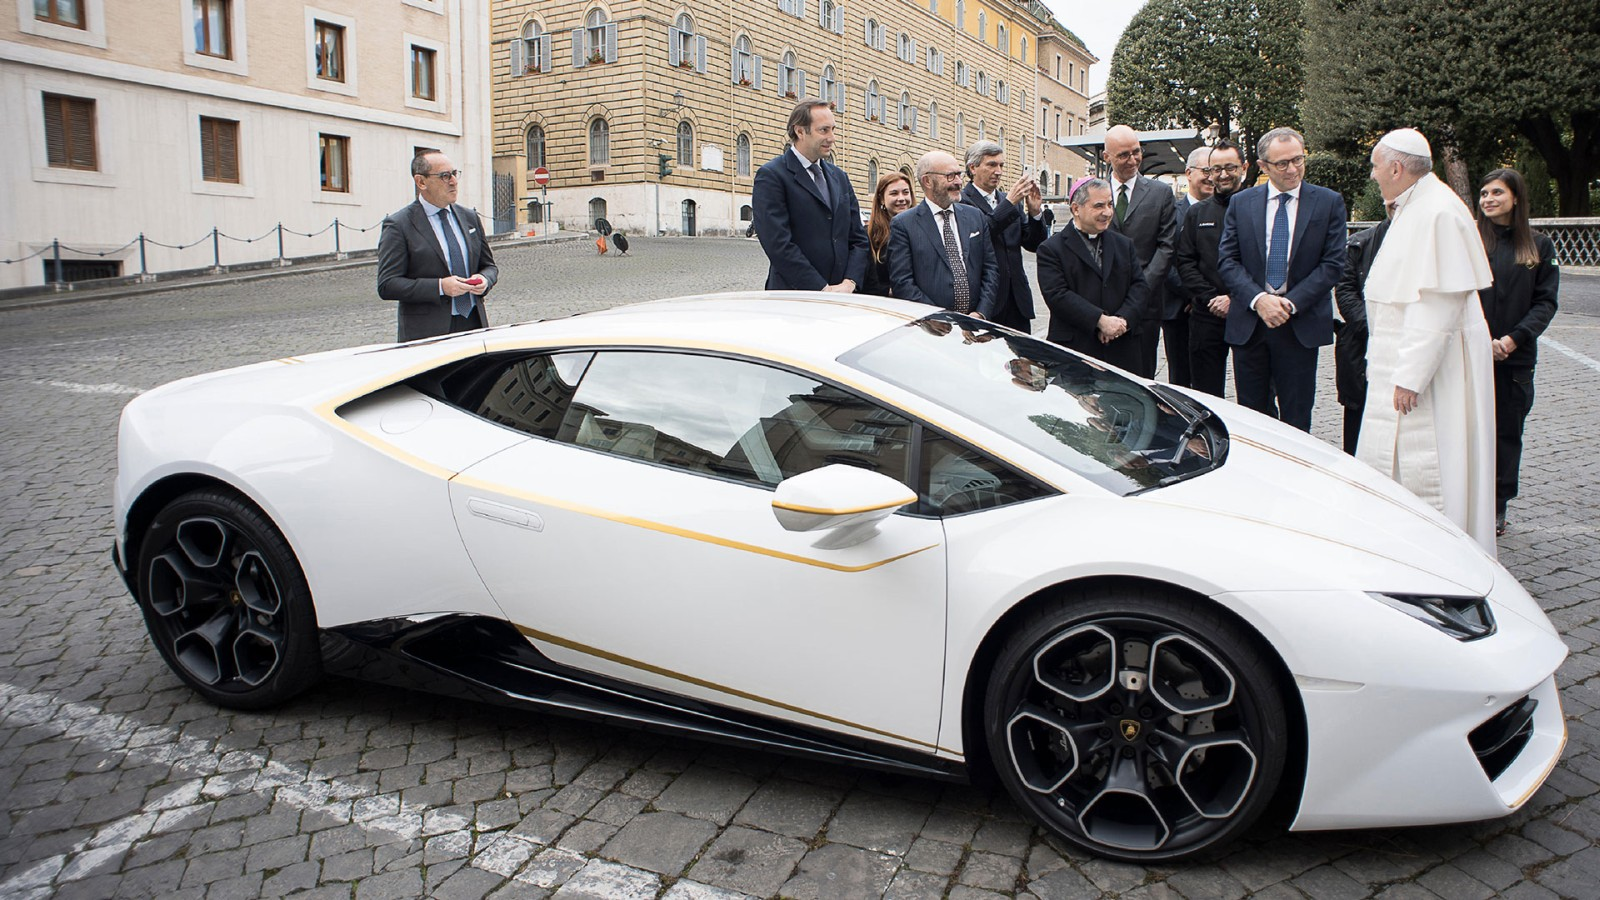 Pope Francis Gets Personalized Lamborghini